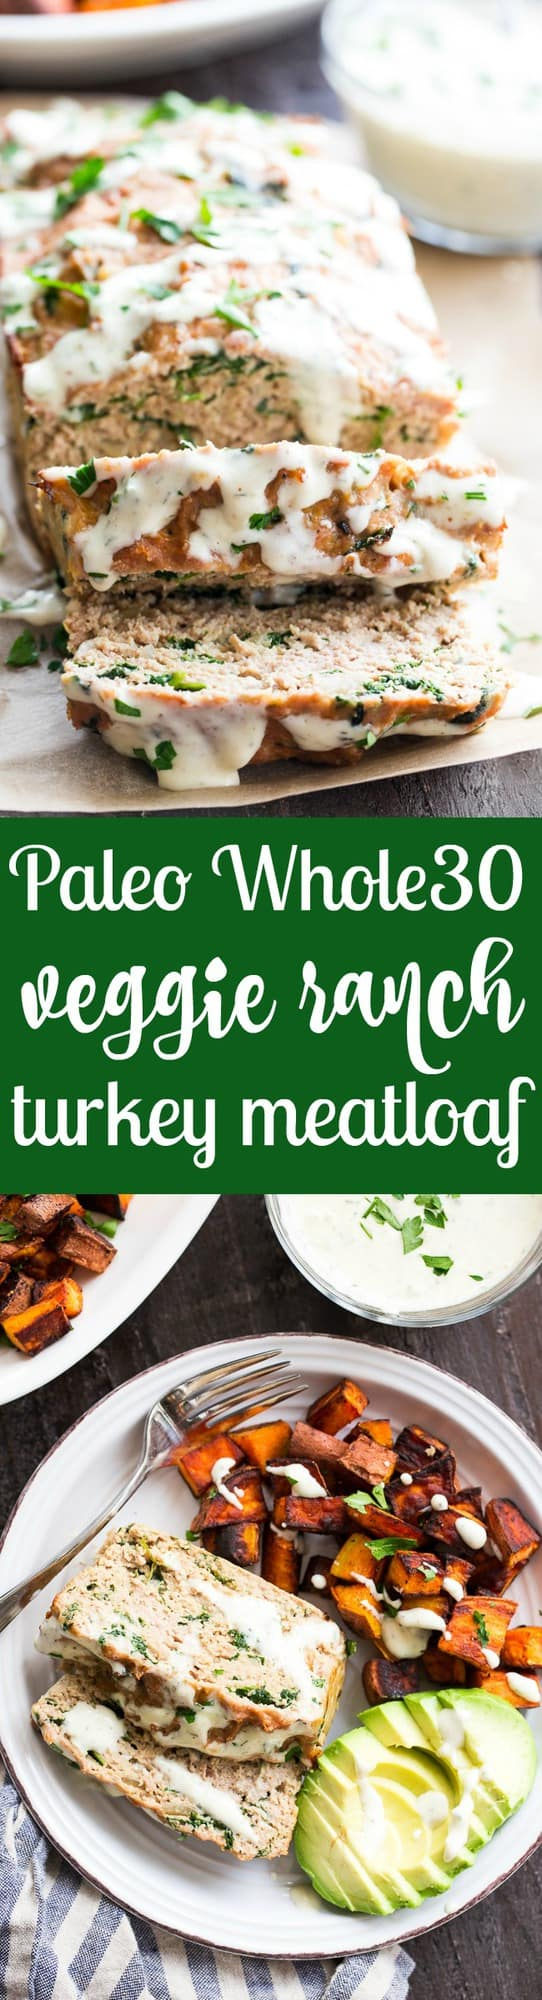 This Veggie Ranch Turkey Meatloaf is packed with zesty ranch flavor, spinach and onions, and topped with zesty dairy free, Paleo and Whole30 ranch sauce!  Delicious with roasted sweet potatoes, greens and avocado.  Family approved, grain free, paleo and Whole30 compliant.